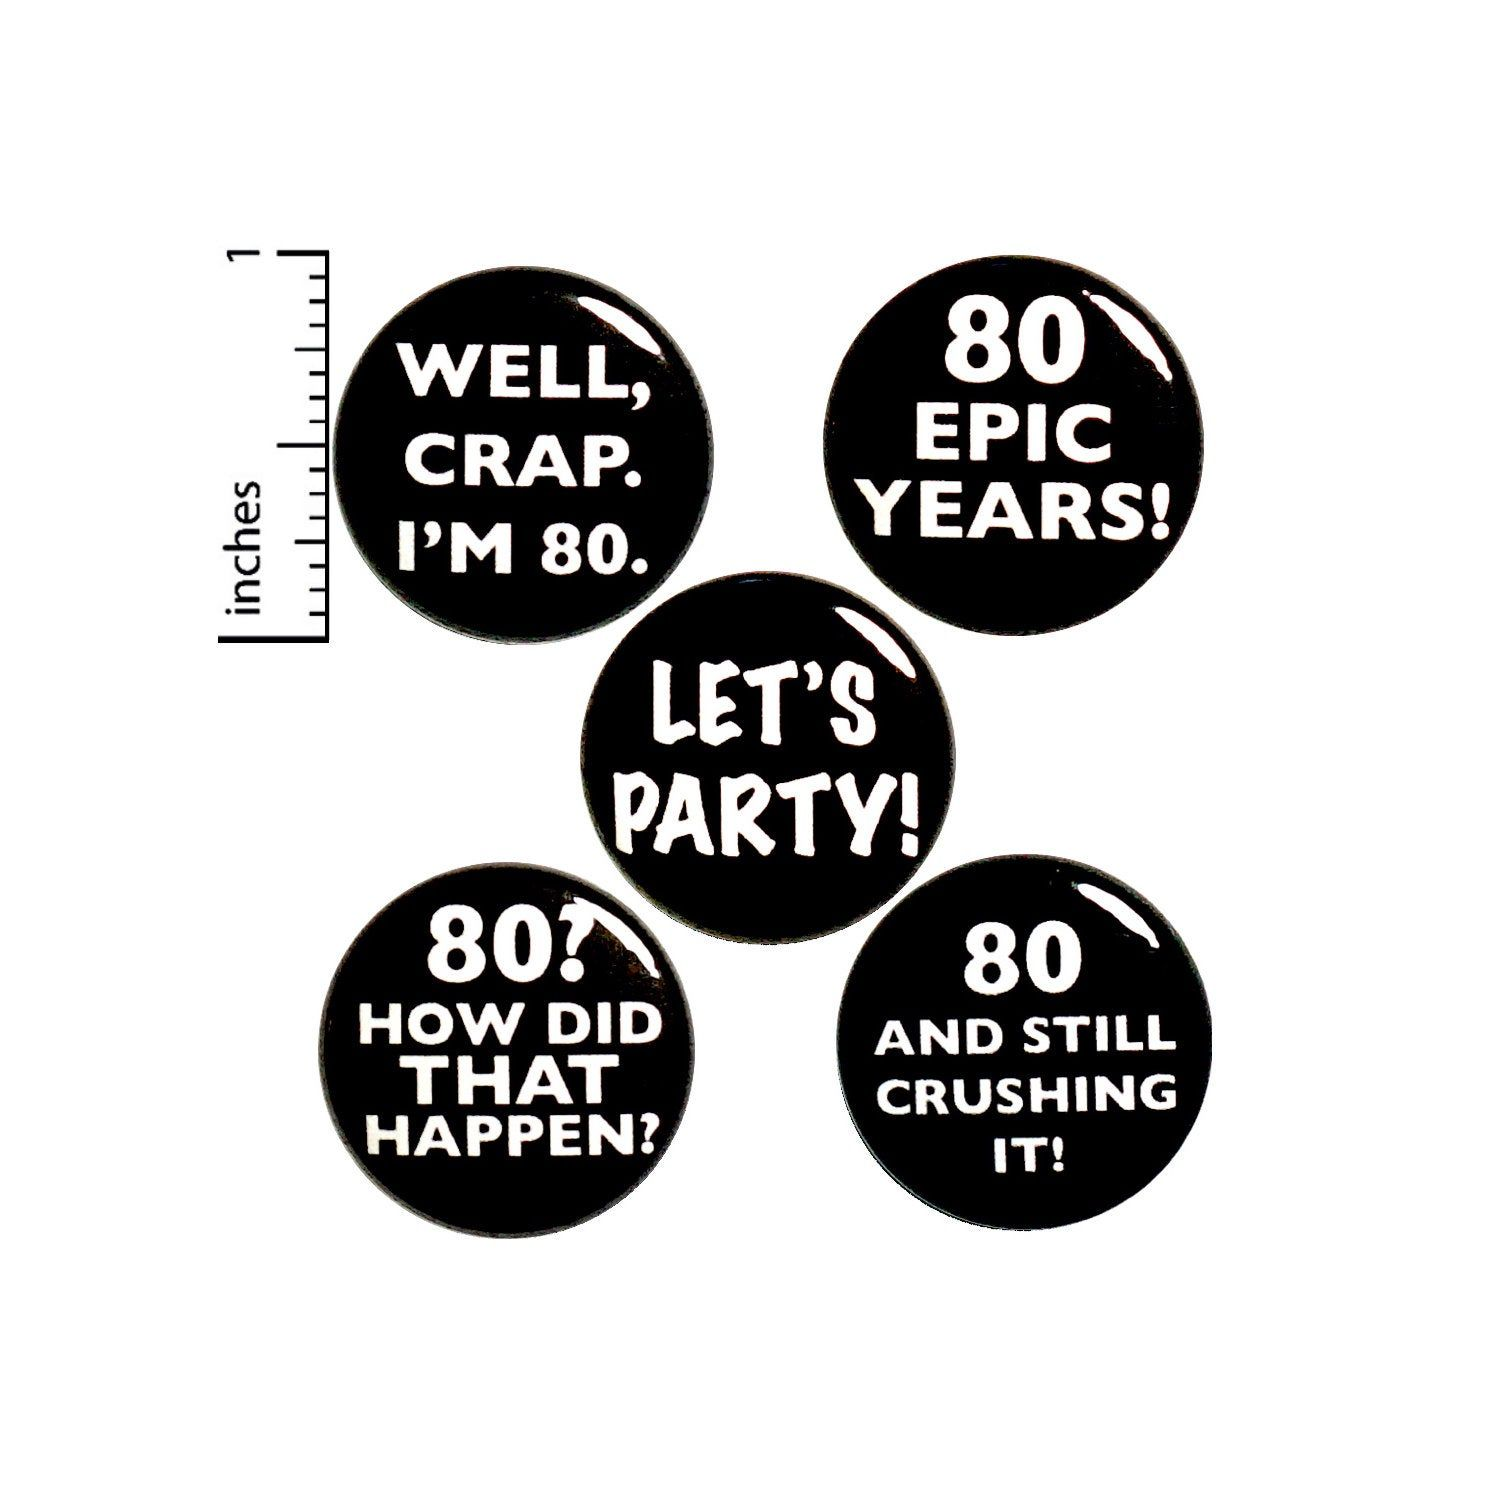 80th Birthday Buttons Or Fridge Magnets Turning 80 Buttons Etsy In 2020 Funny Buttons 40th Birthday Funny Happy Birthday Wishes